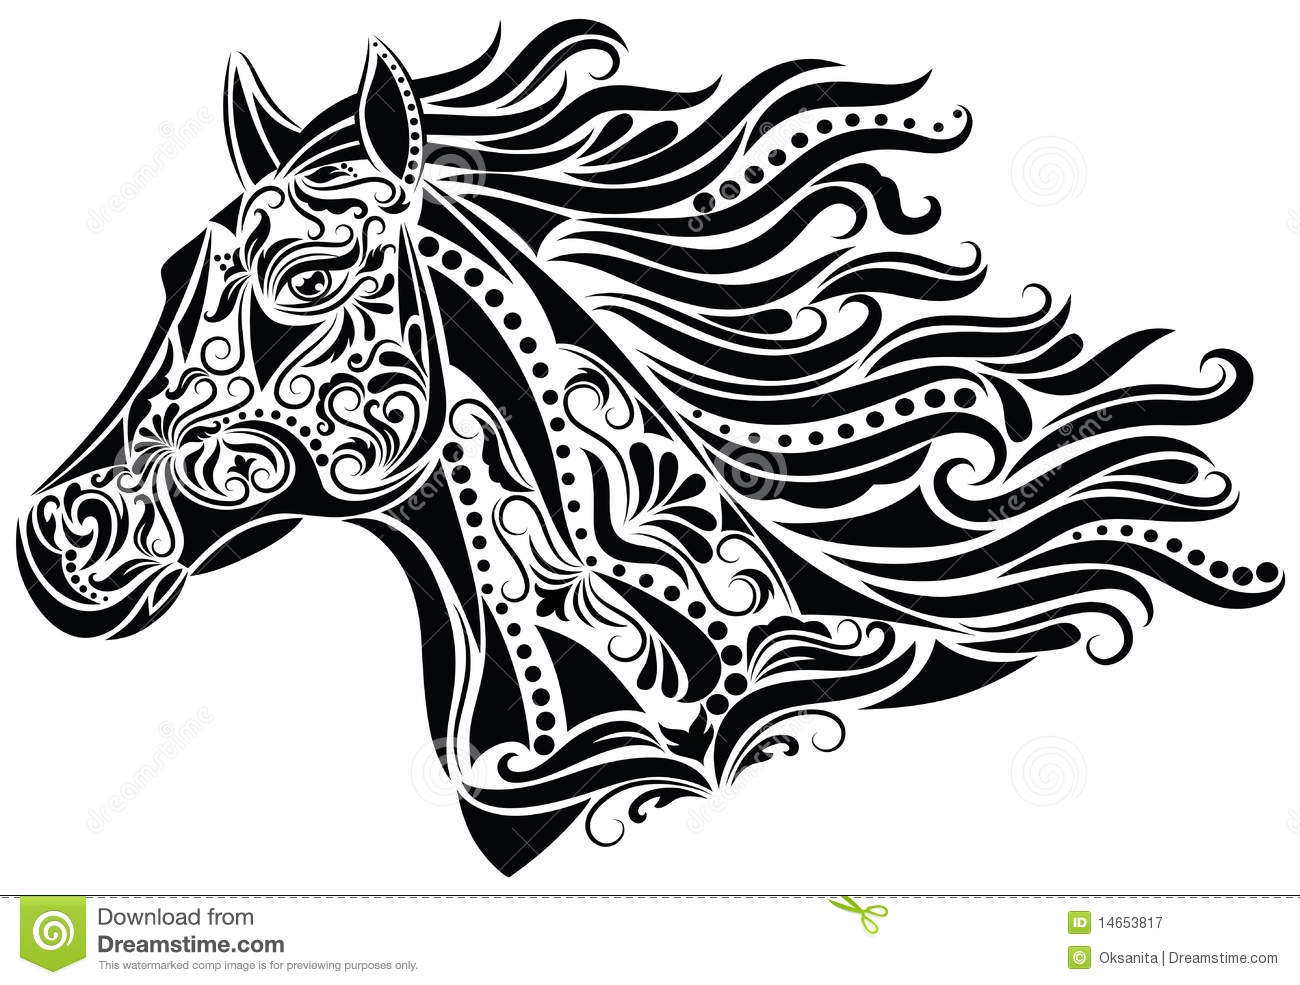 Abstract Horse Coloring Pages : Abstract horse royalty free stock photography image